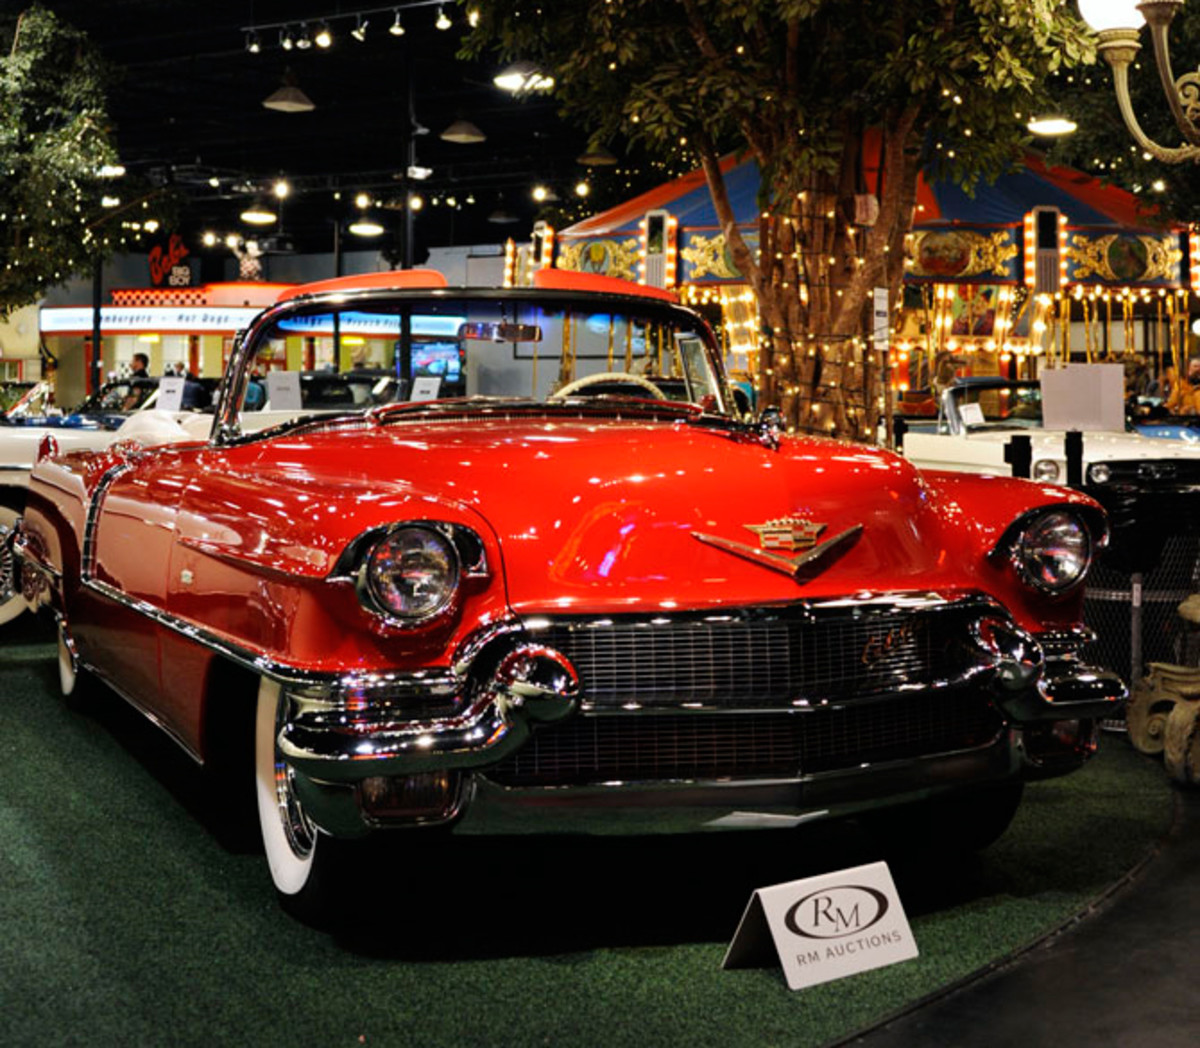 Record-setting 1956 Cadillac Series 62 Convertible (Photo by Eugene Robertson © 2012 courtesy RM Auctions)